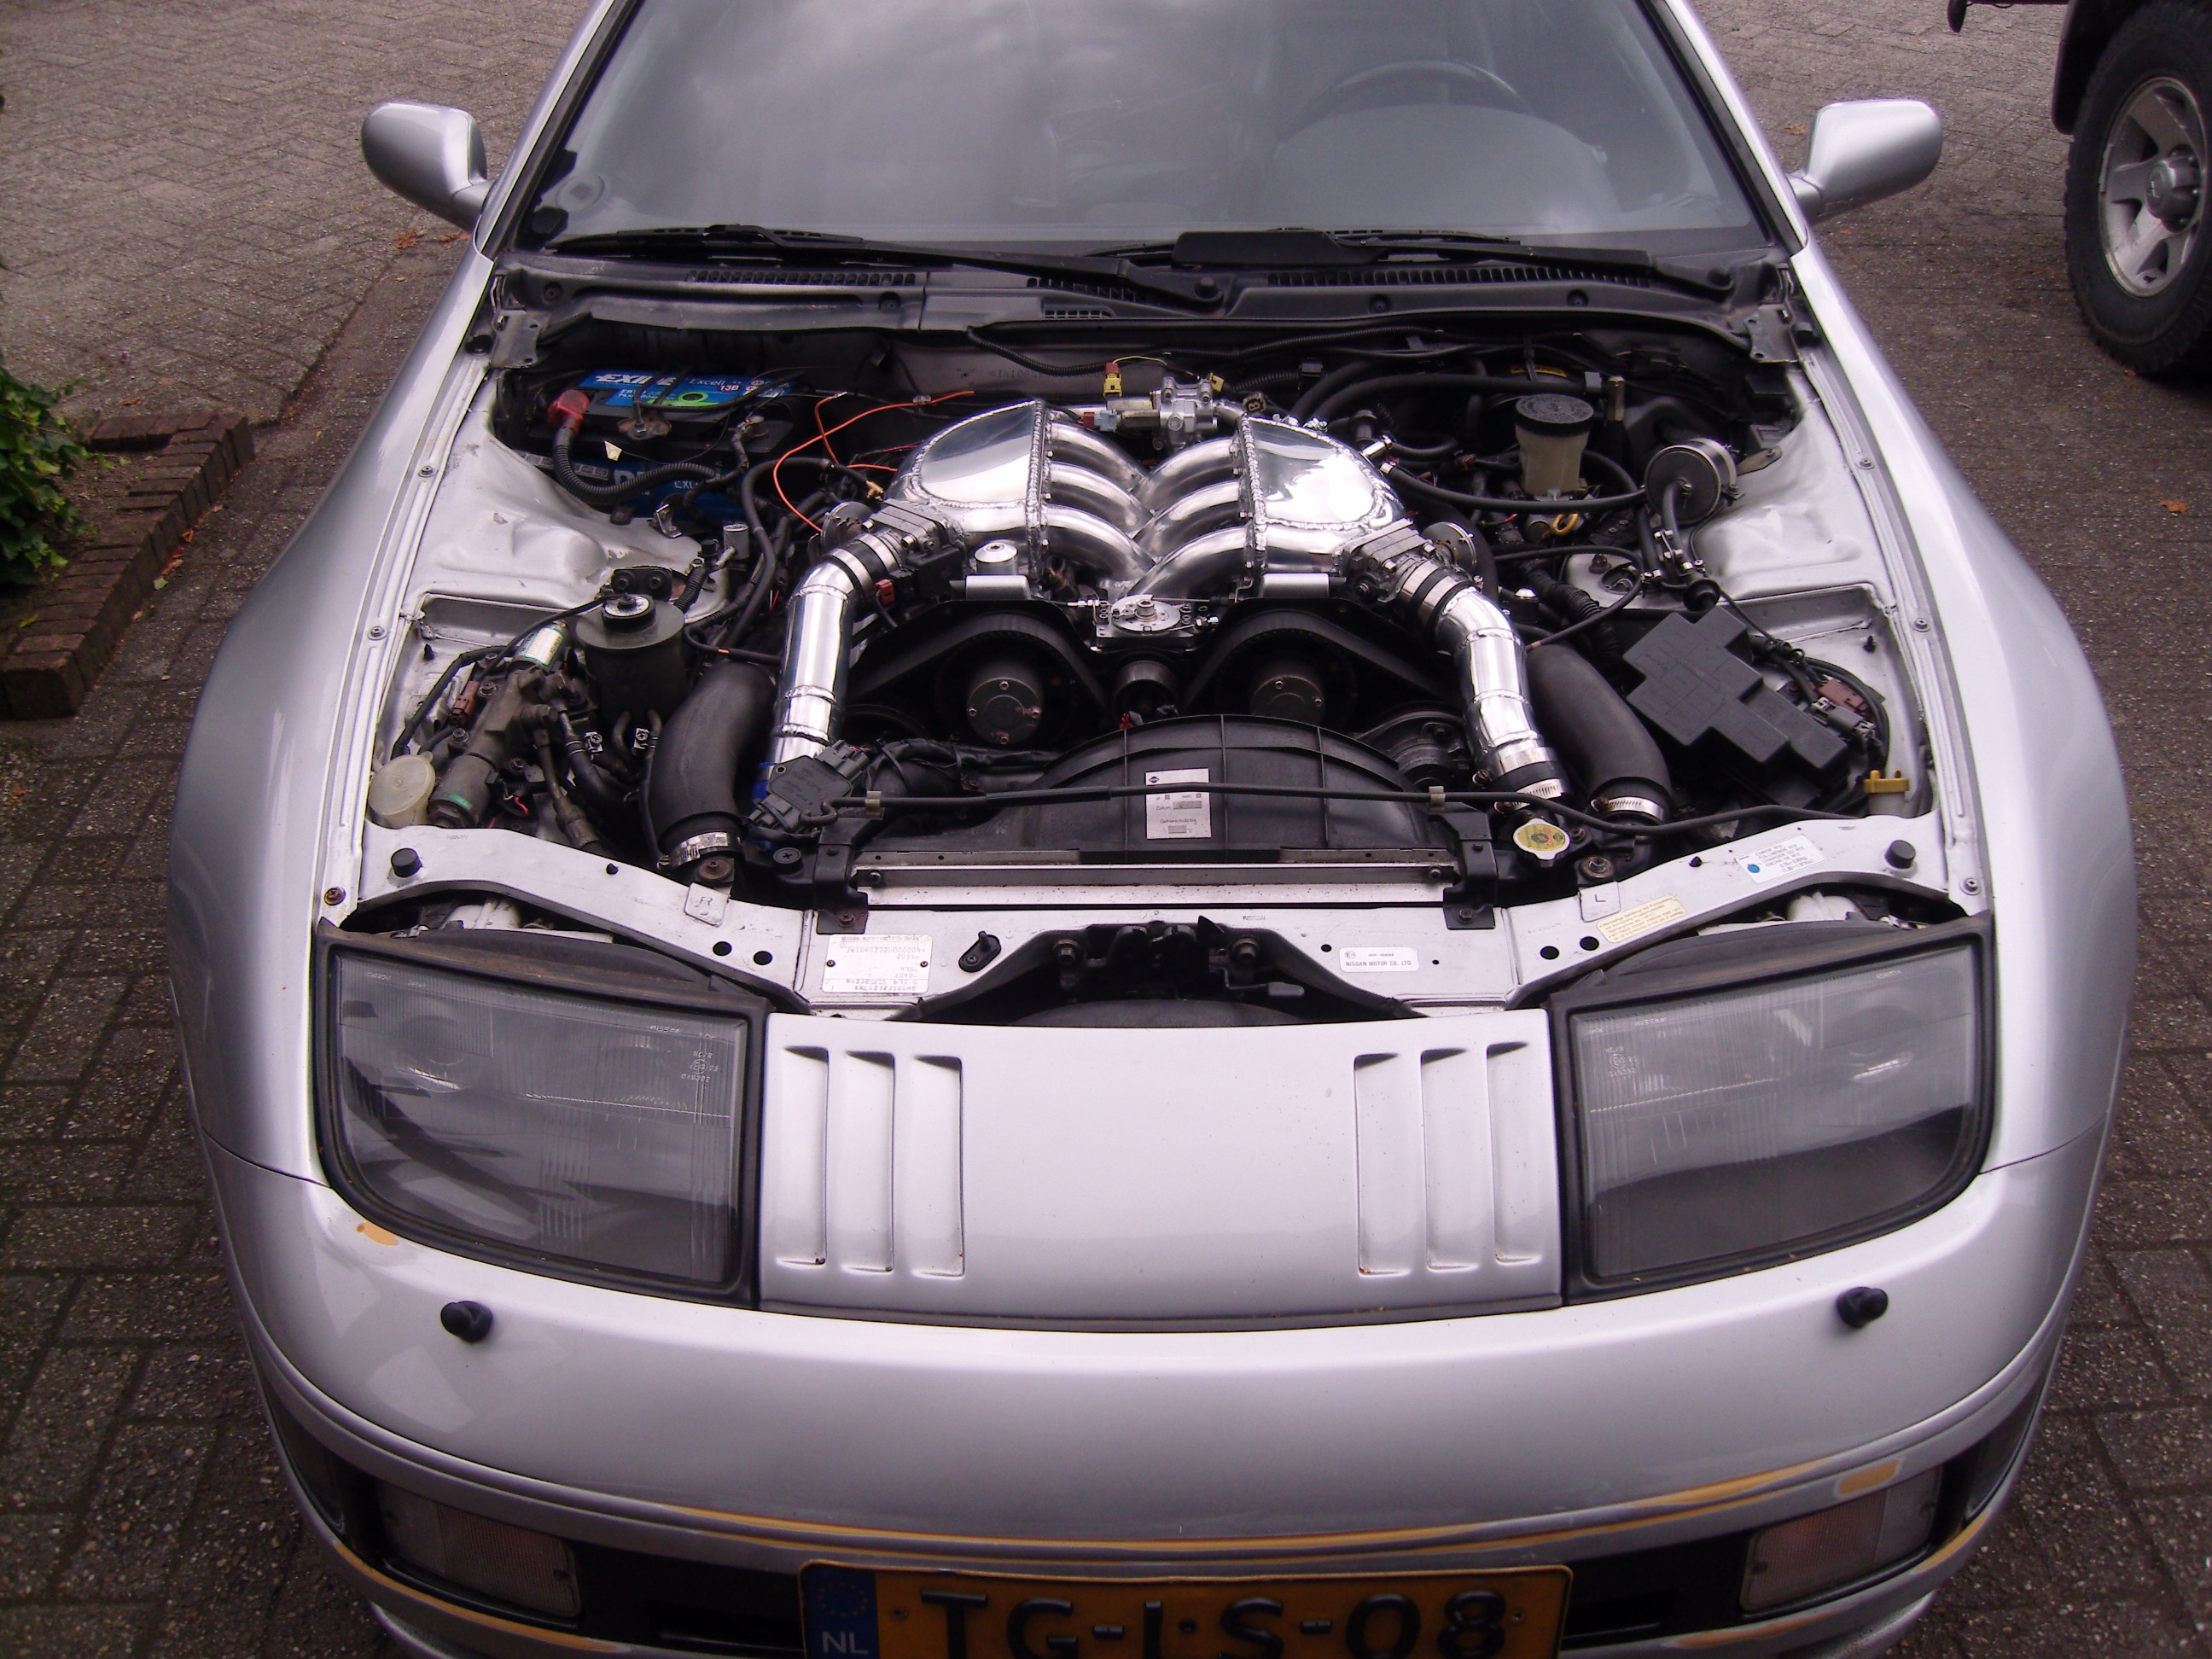 Vg30dett Custom Intake Manifold Nissan Z32 Wiring The Idle Air Unit Is Located In About Same Spot As On Itb And Tubing It Fits To Also Serves Balance Pipe Between 2